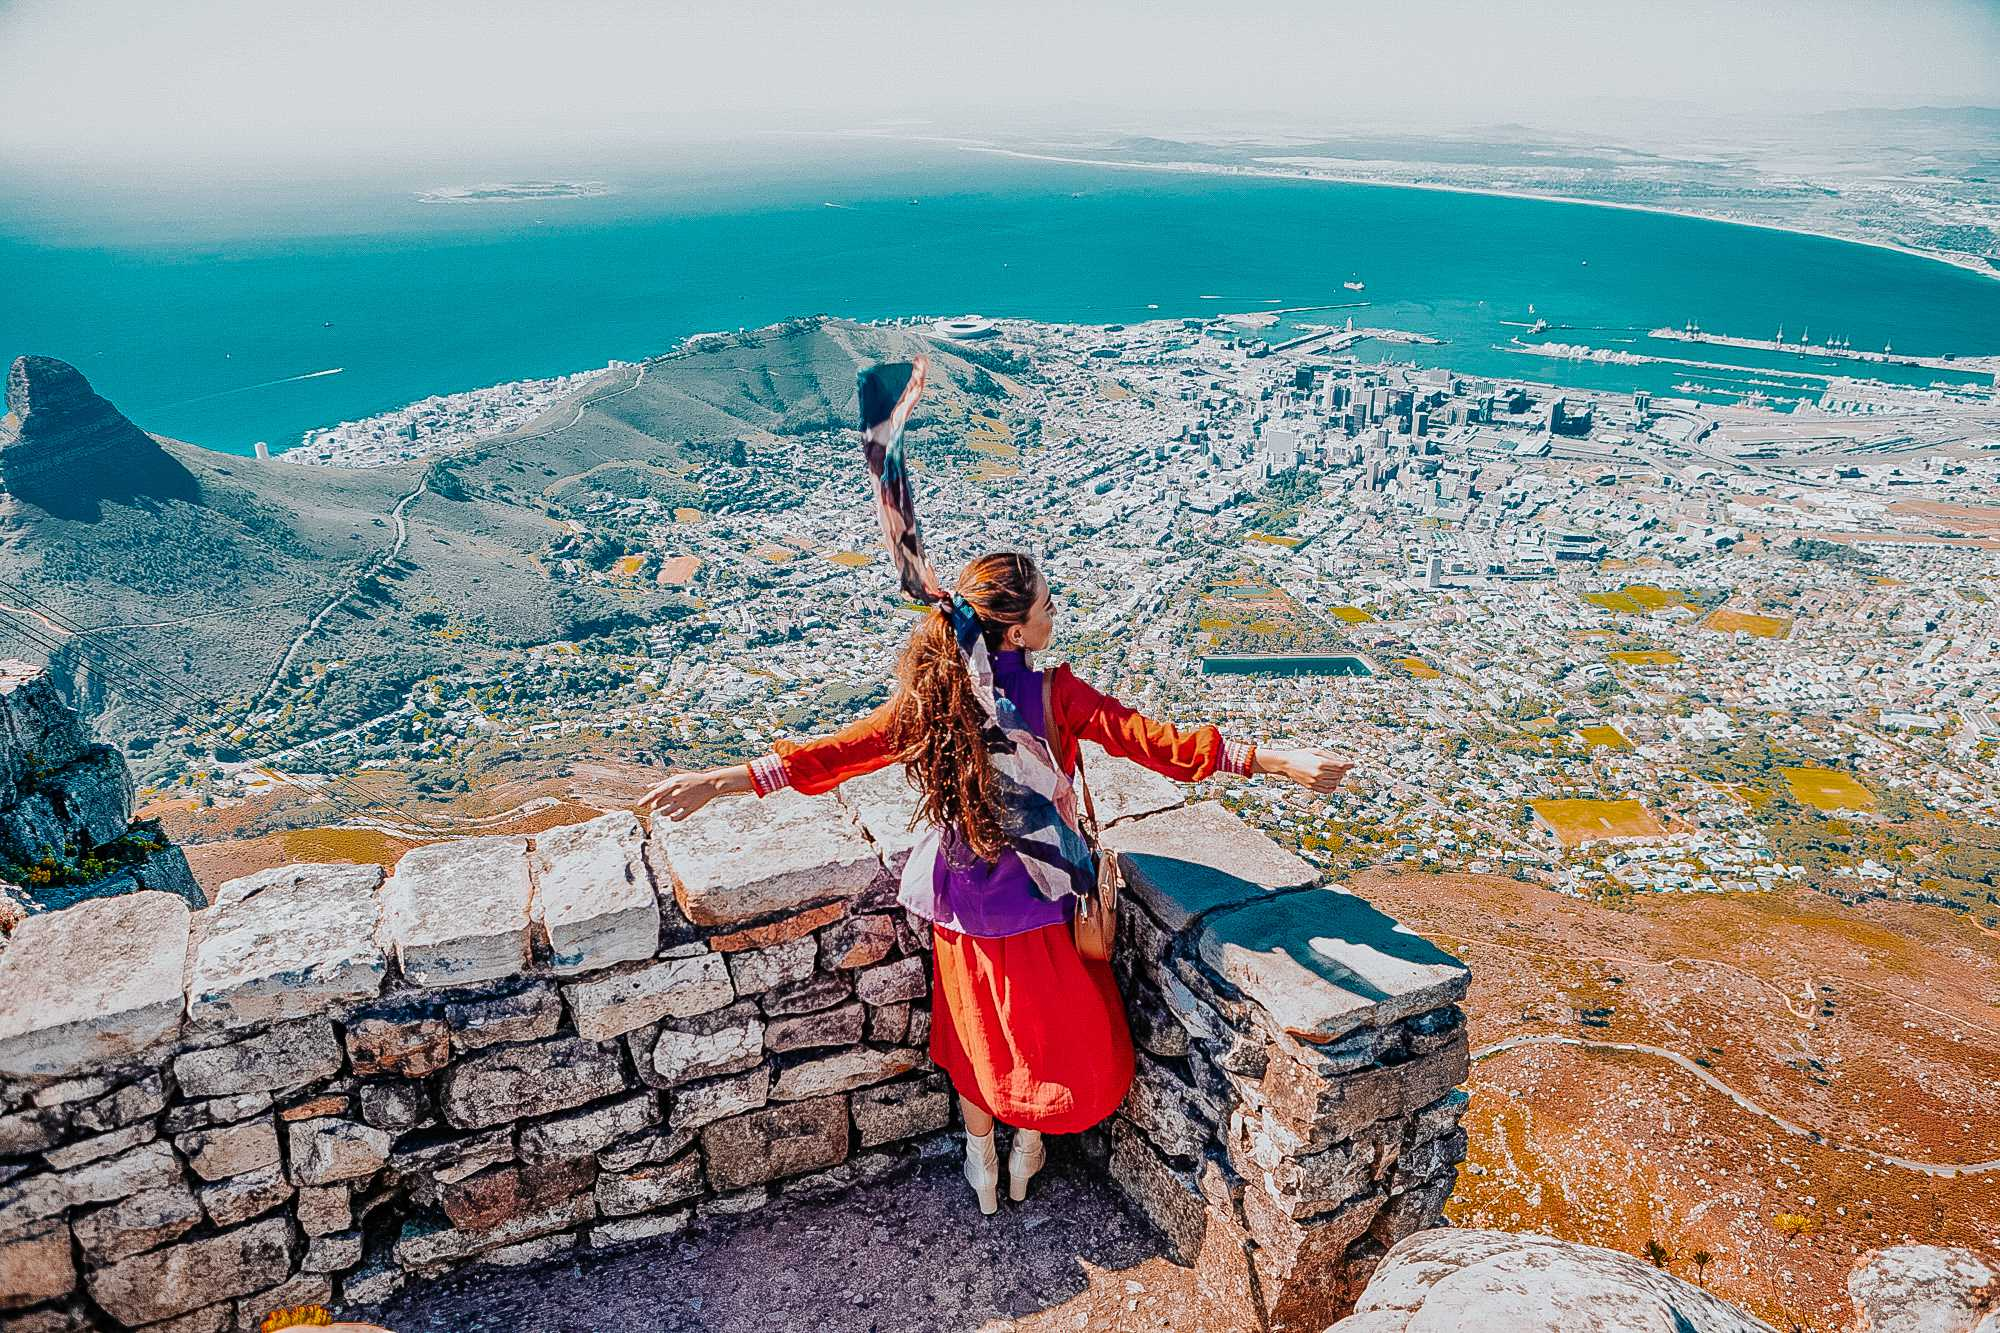 cape town, city, travel, travel blog, cape town travel diary, neha menghwani, indian blogger, travel blogger, cape point, long street, south africa, vero moda, shopping, table mountain, museum tour, wine tasting, VINEYARDS, WINE, WINERY